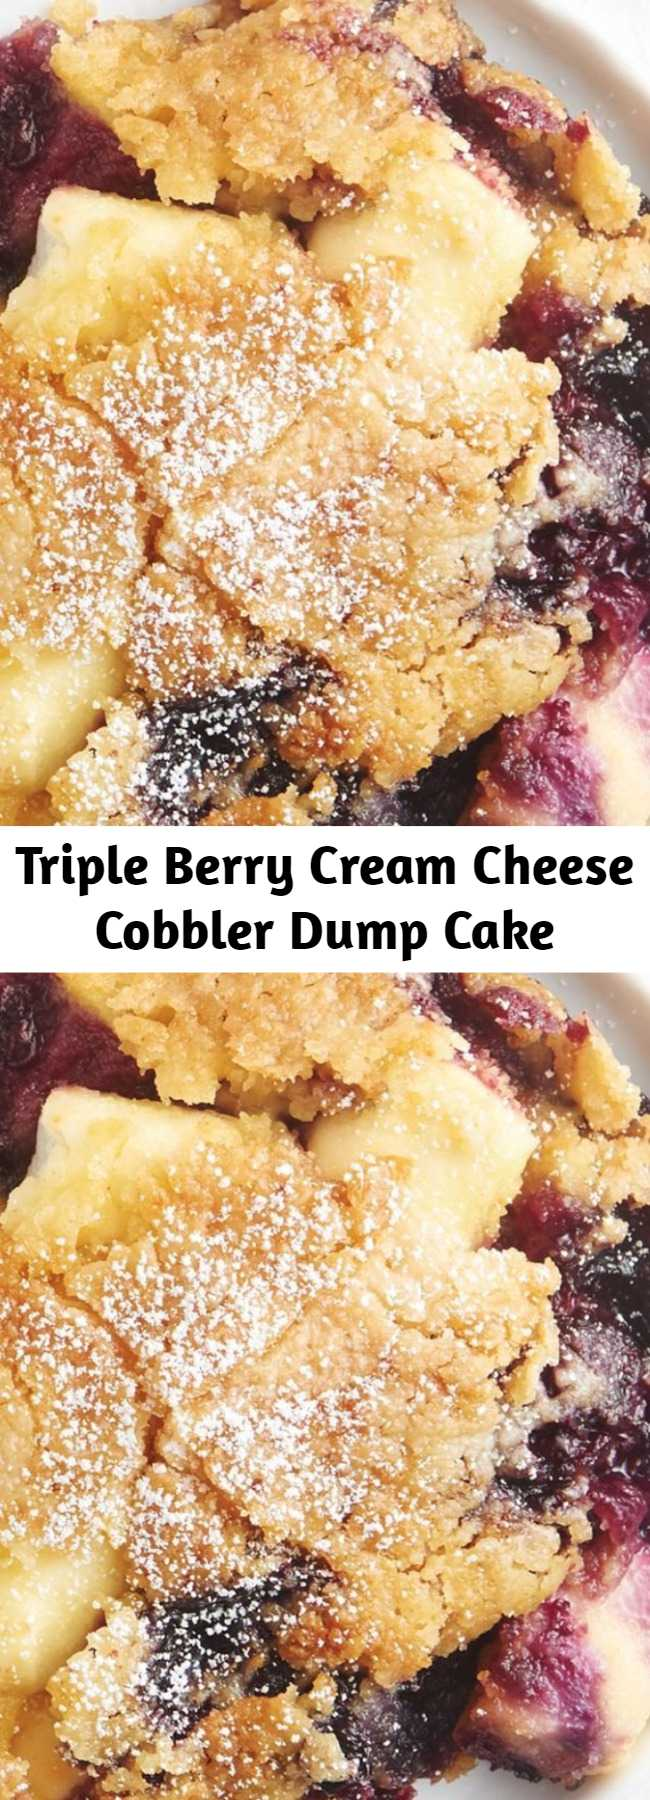 Triple Berry Cream Cheese Cobbler Dump Cake - When a fresh berry cobbler meets an easy dump cake, the end result is pure magic. Raspberries, blueberries and blackberries get mixed with cream cheese and cake mix for an easy dessert that's no-fuss and totally delicious.